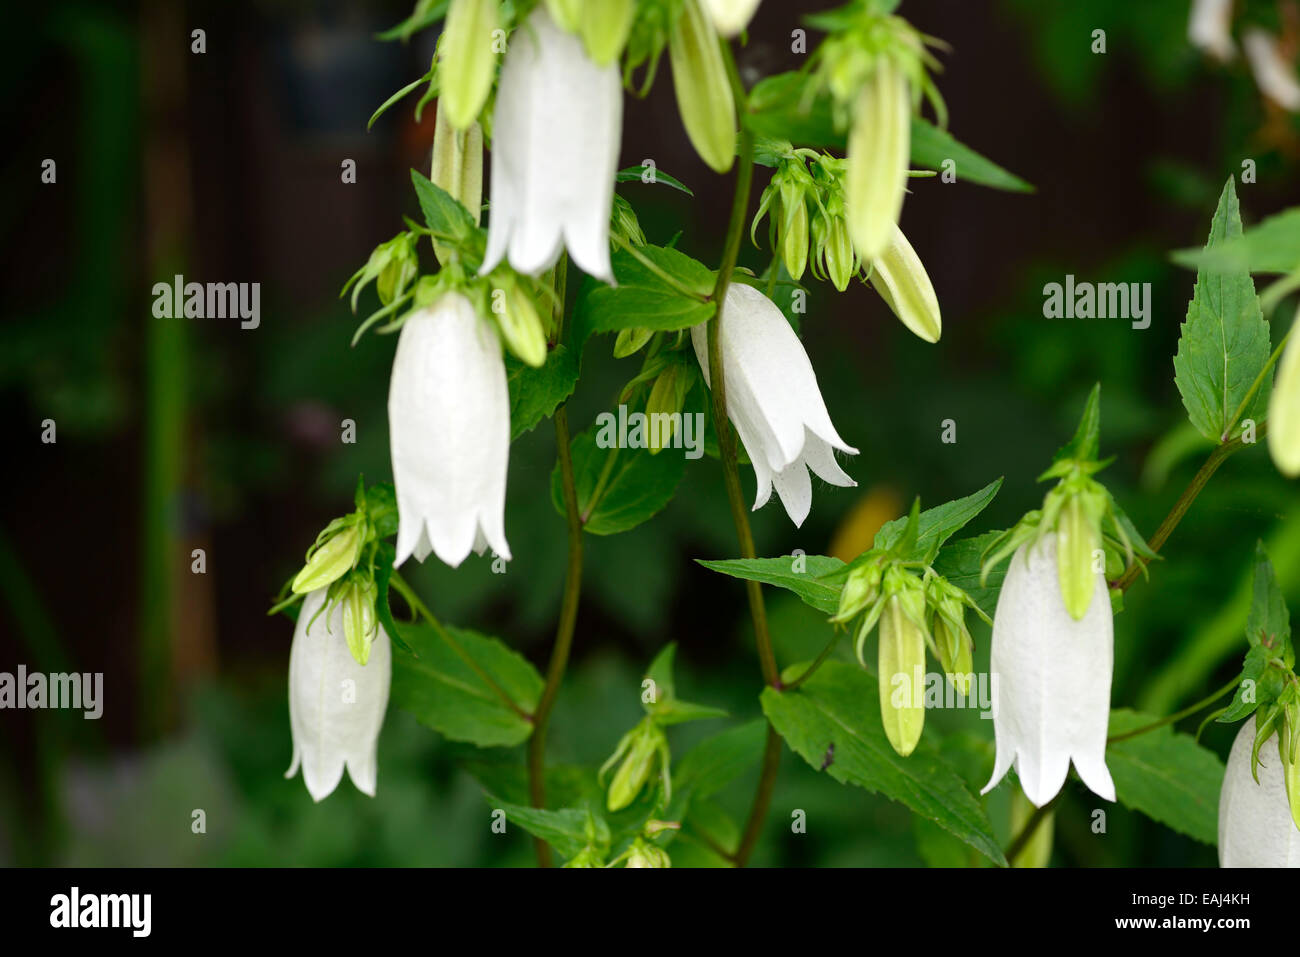 Campanula takesimana stock photos campanula takesimana stock campanula takesimana alba white bellflower flowers bell shaped herbaceous perennial korean bellflowers rm floral stock mightylinksfo